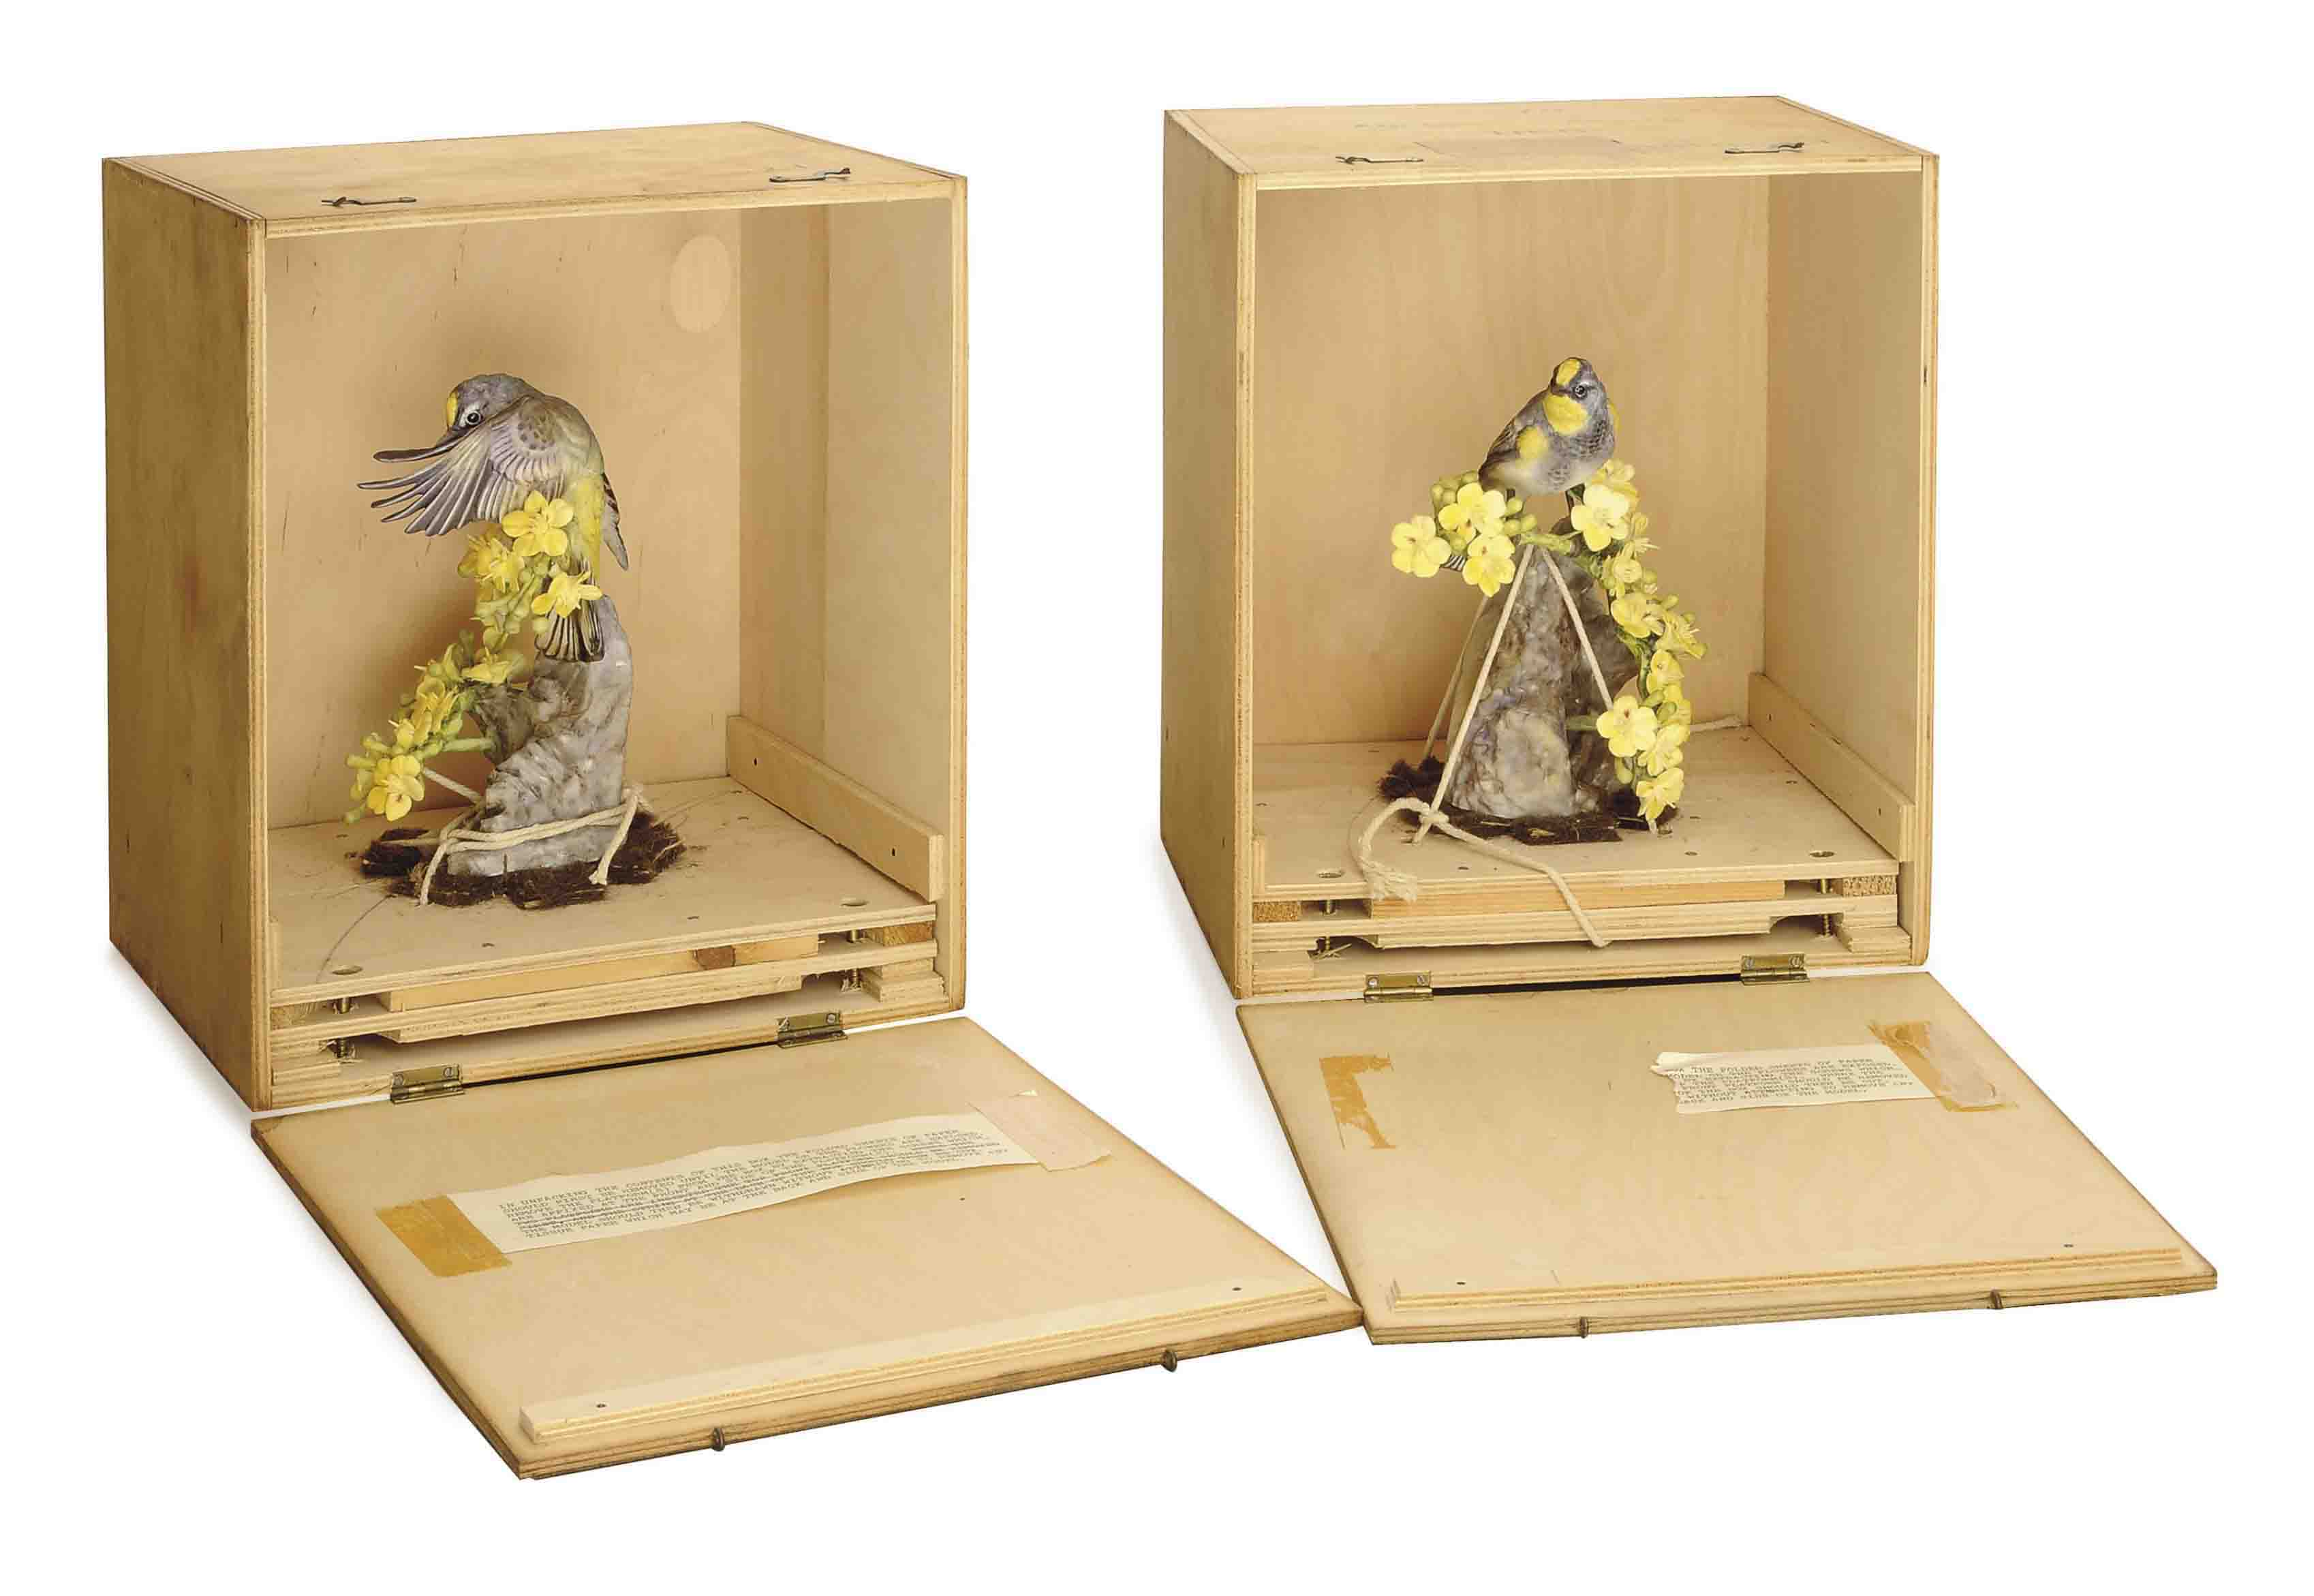 TWO PAIRS OF ENGLISH PAINTED PORCELAIN MODELS OF 'AUDUBON'S WARBLERS WITH PALO VERDI',